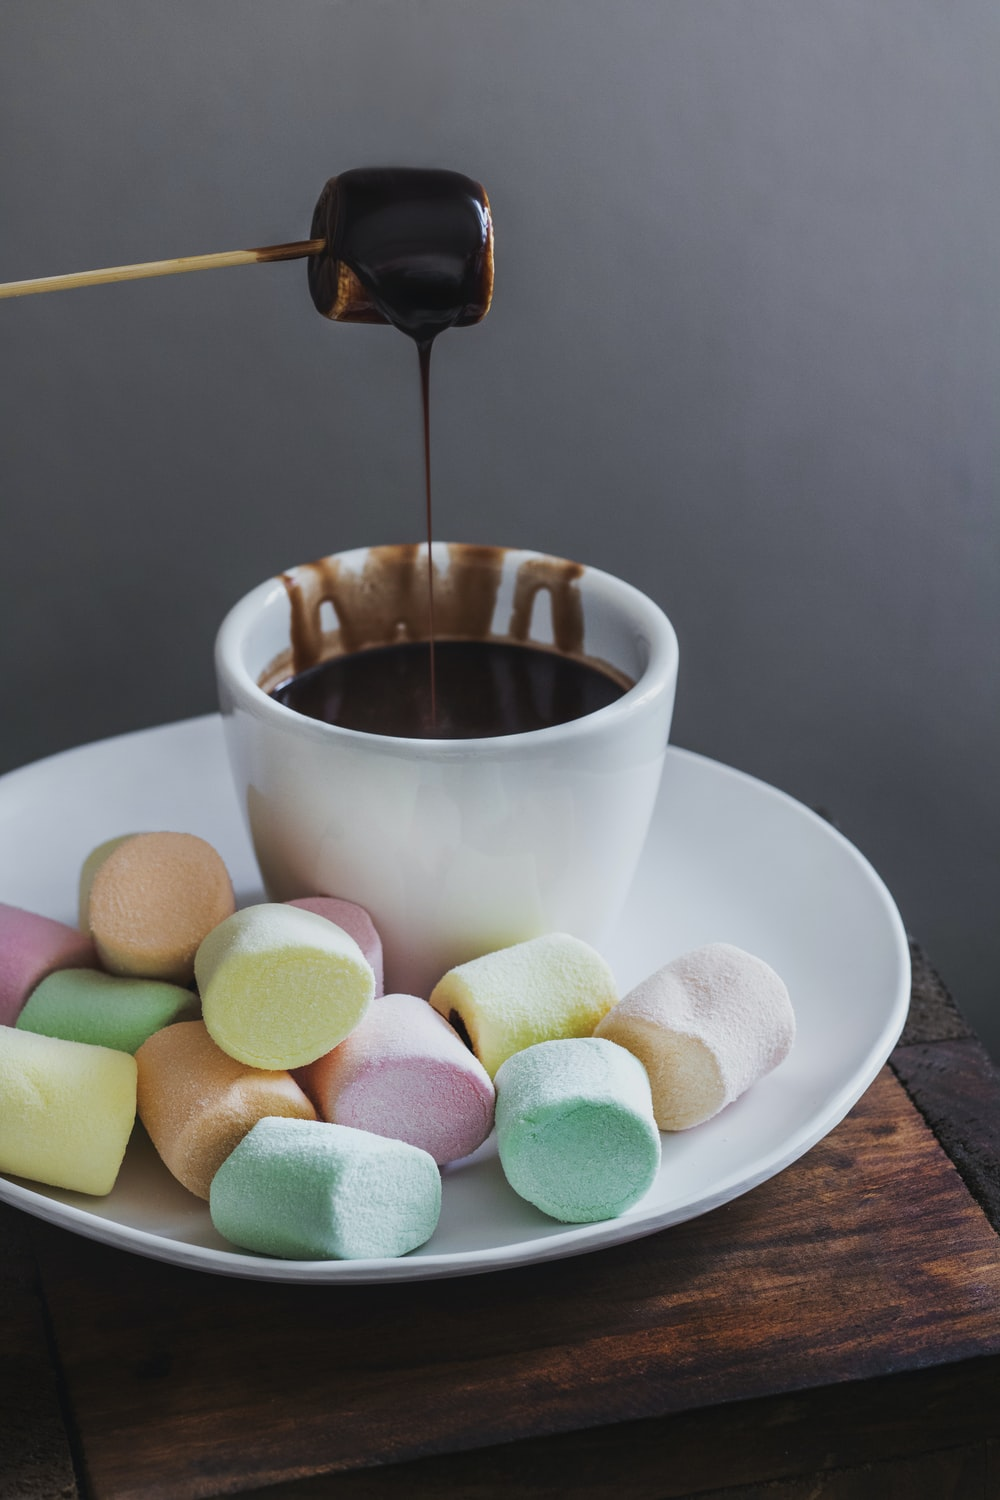 marshmallow with chocolate